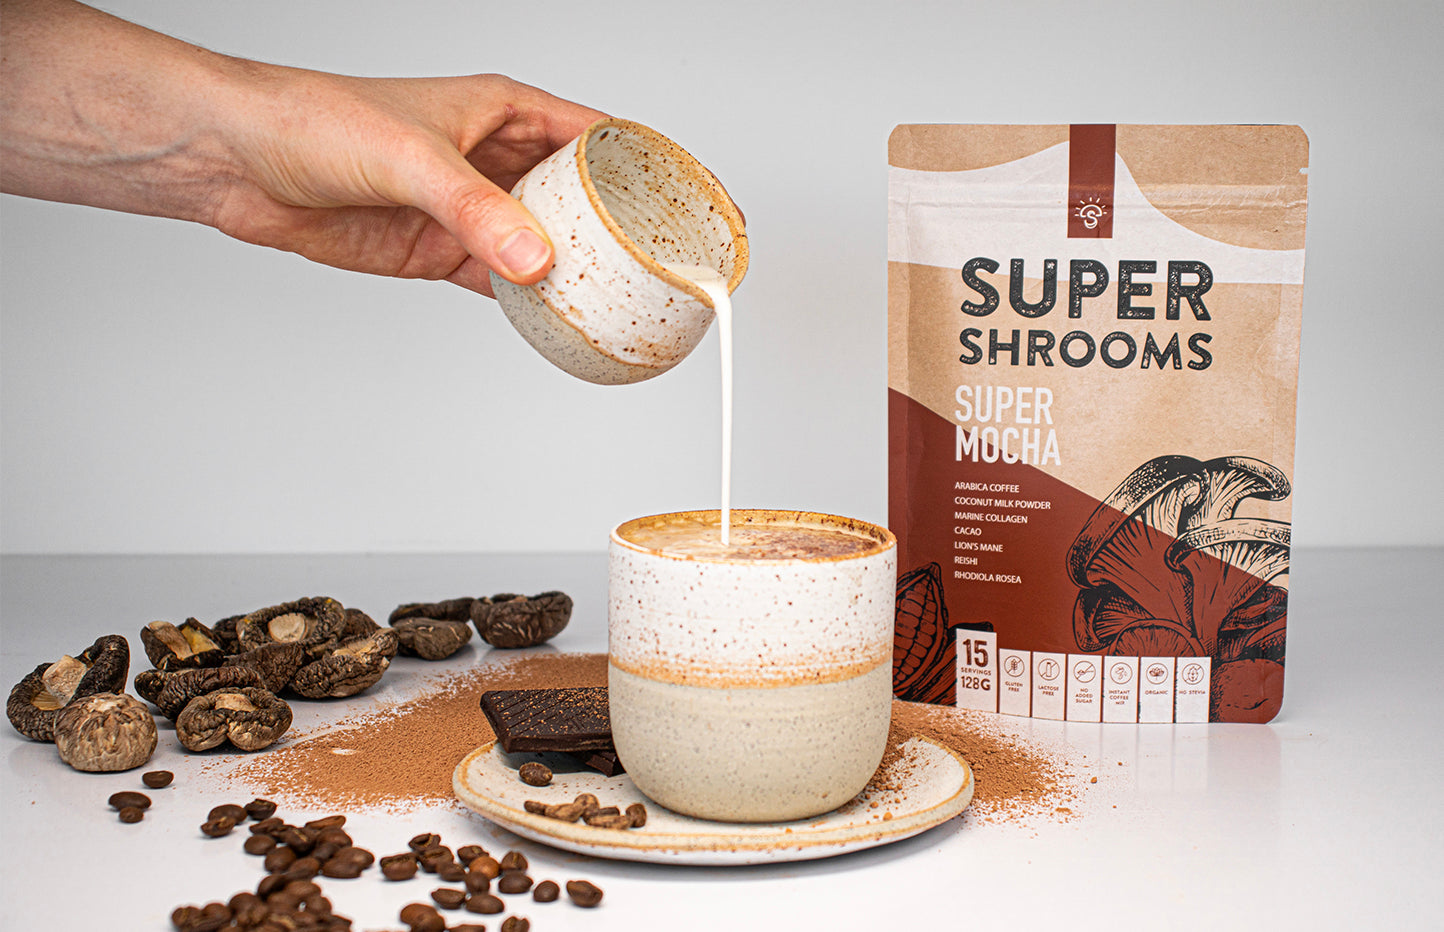 Super Shrooms Super Mocha Arabica Coffee